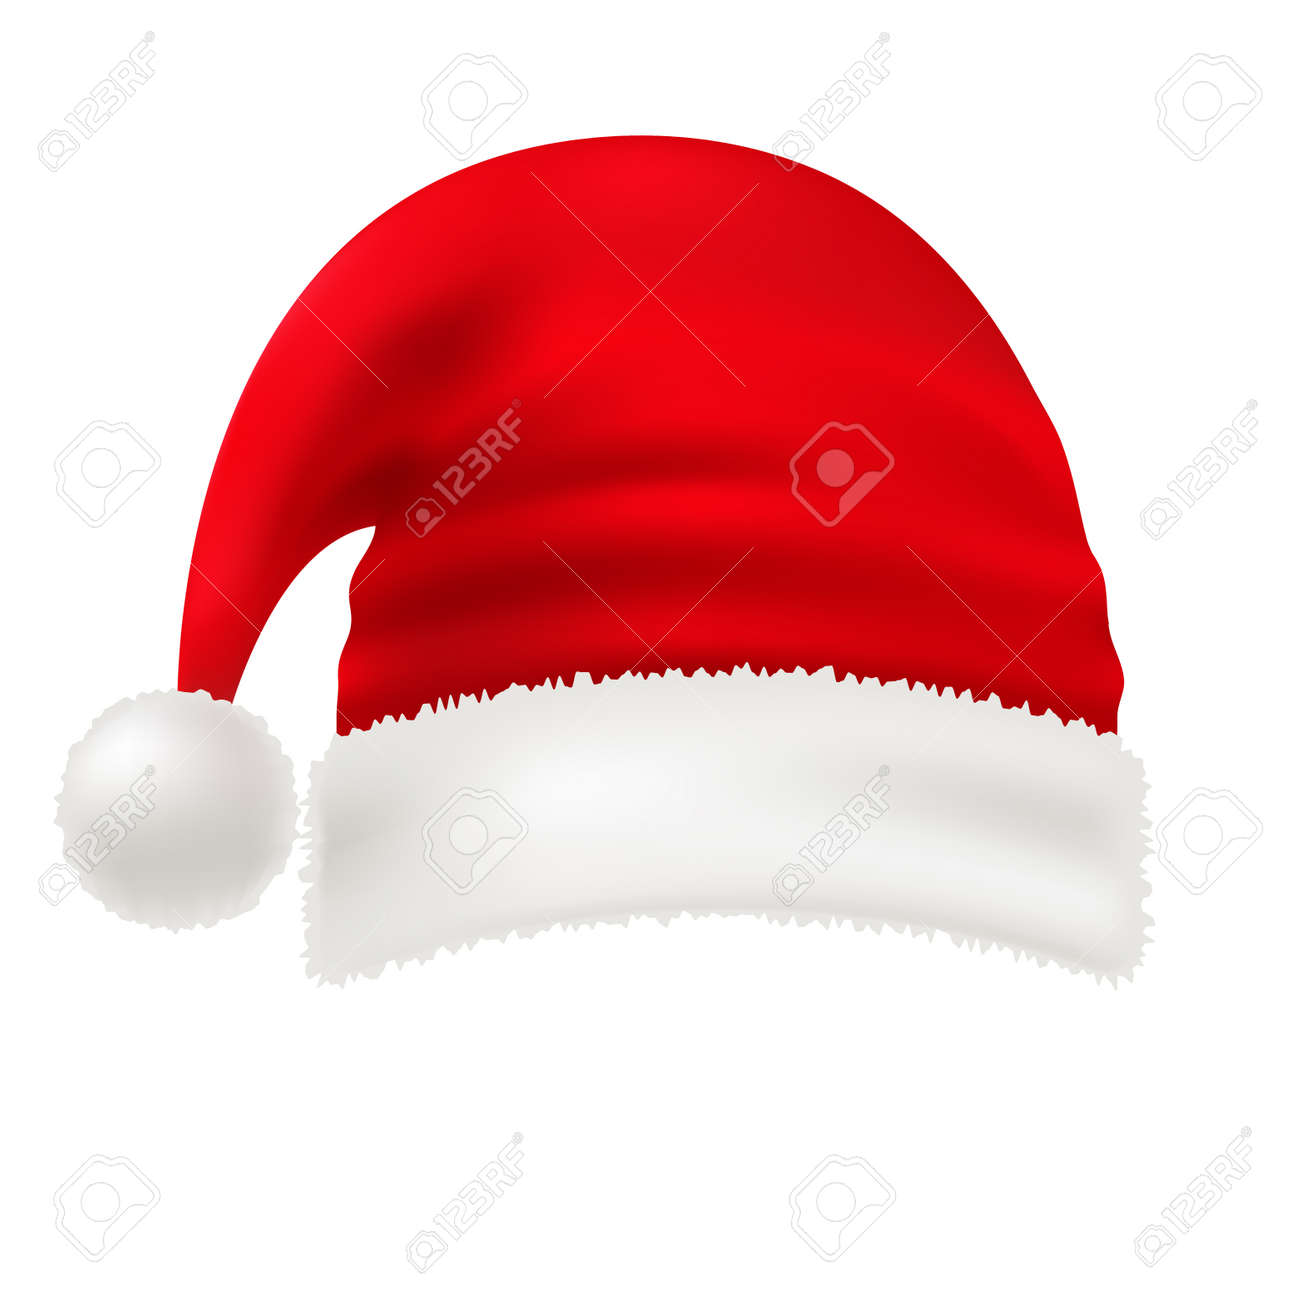 Traditional Symbol Vector Vector Red Santa Hat Isolated On Transparent Newyear Hat A Vector Red Santa Hat Isolated On Transparent Background nice food Santa Hat Transparent